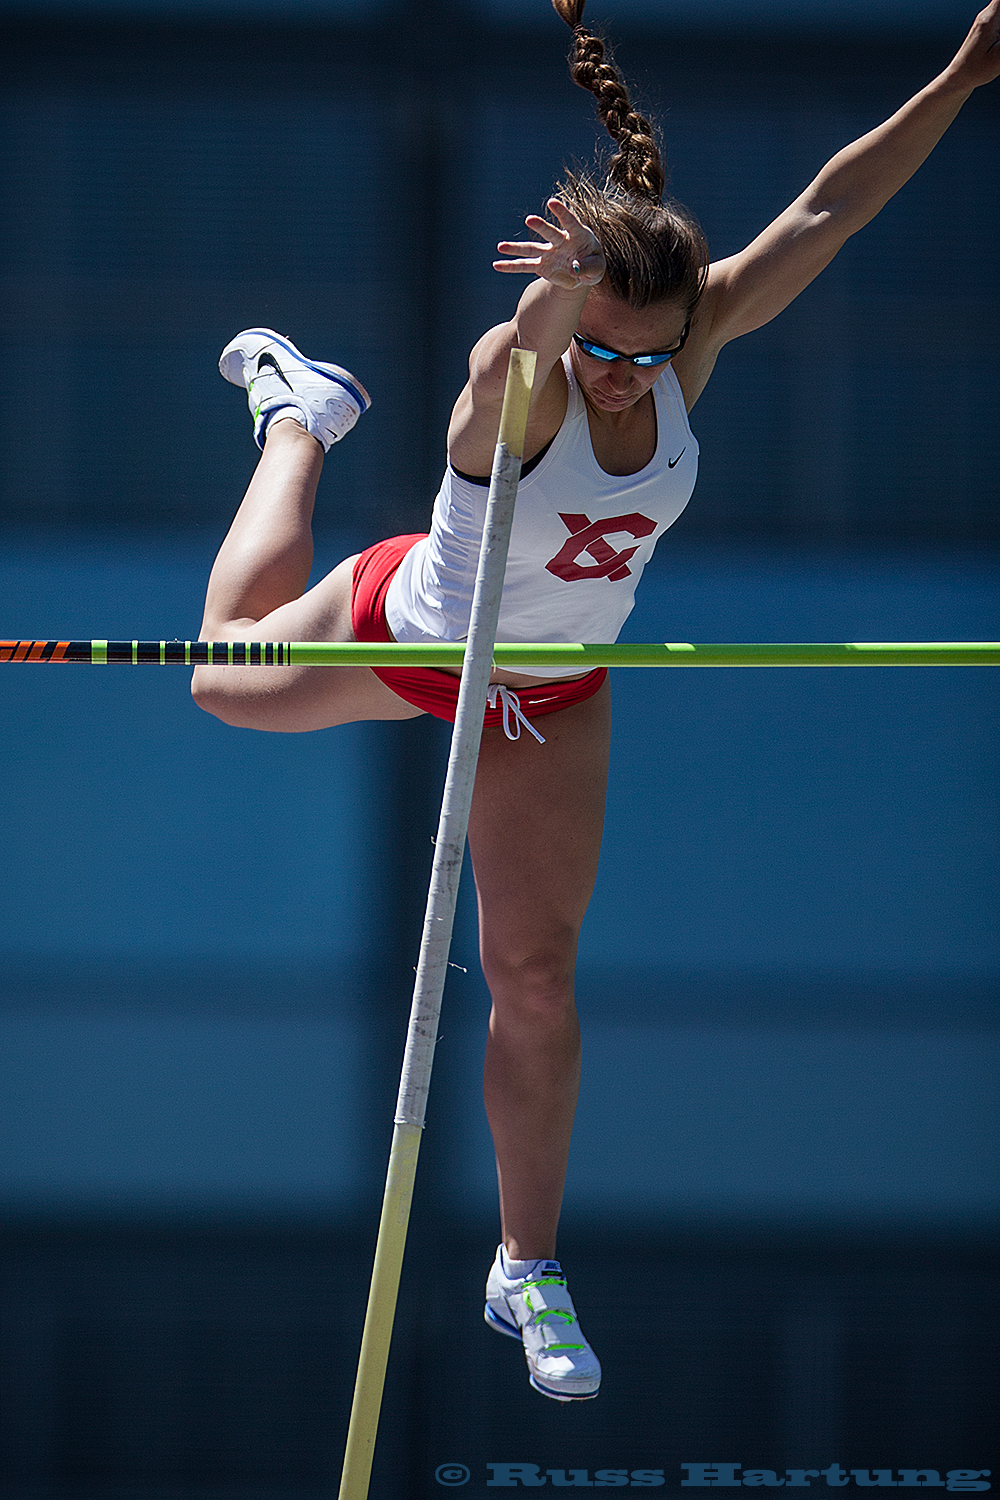 Pole vault competition at the 2013 Heptagonal Championships at Princeton.